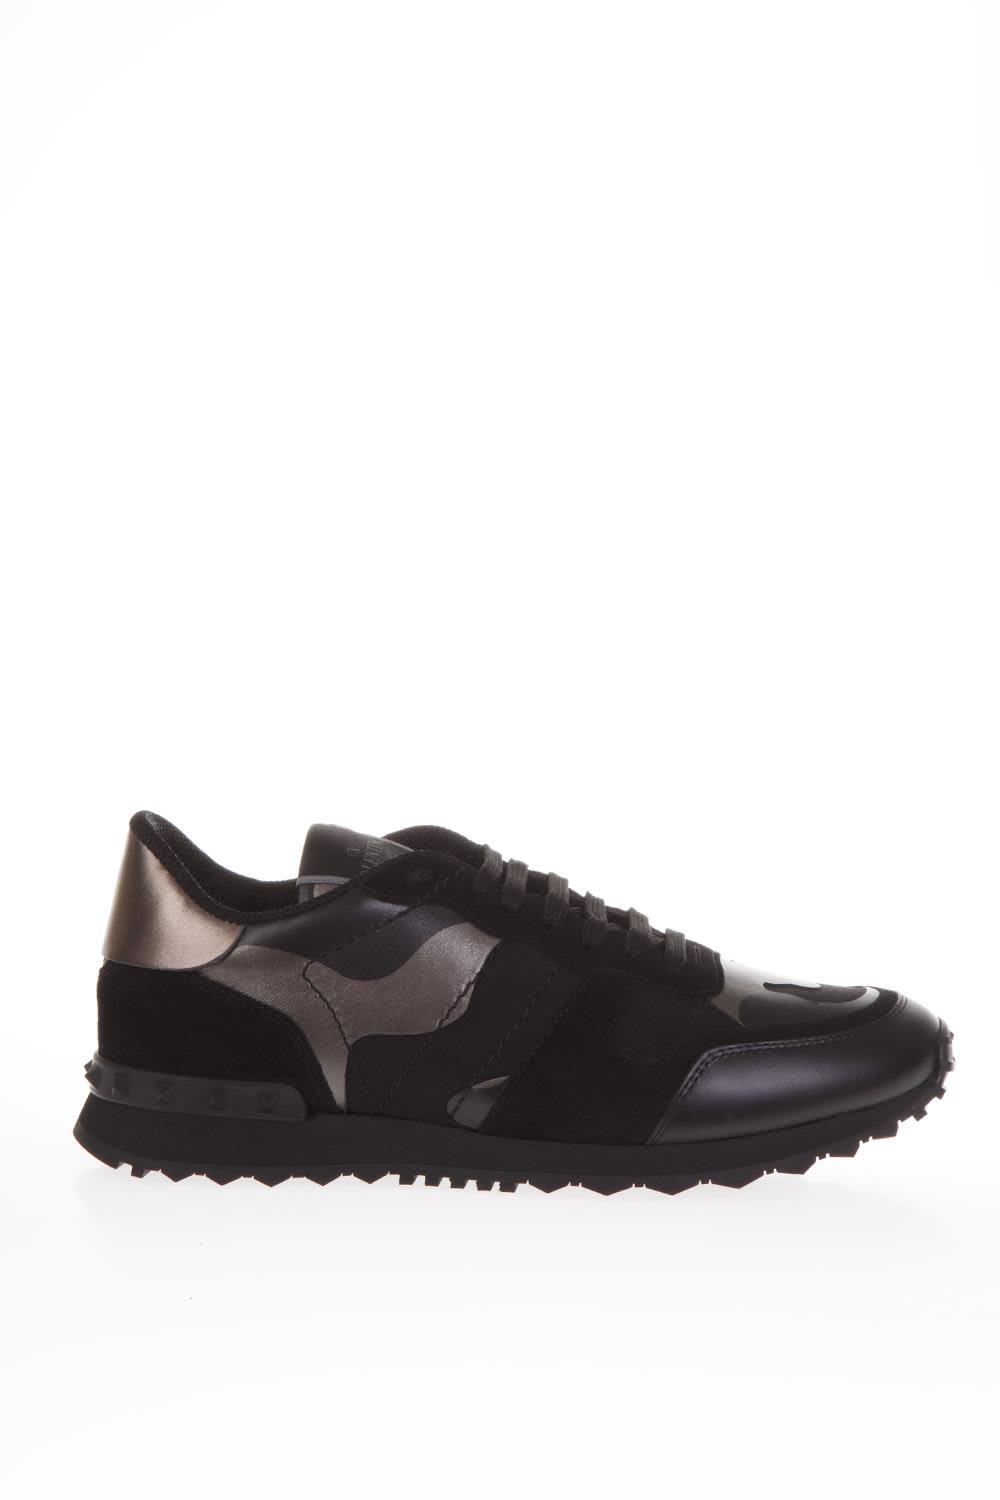 Valentino Garavani Rockrunner Black Leather & Suede Sneakers